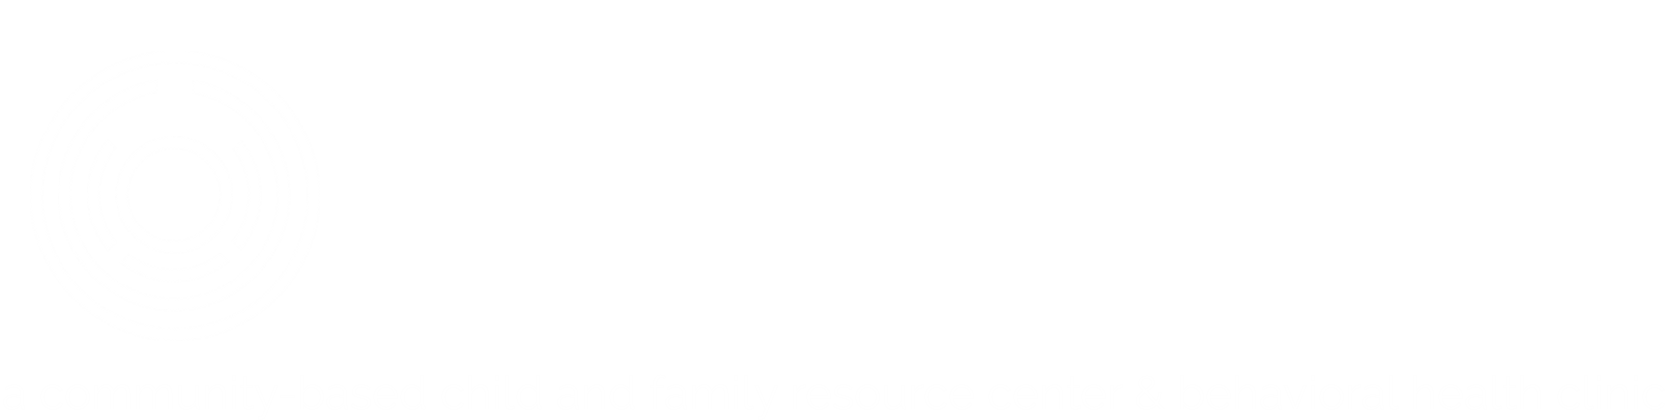 The Lynda A. Cohen Center for the Study of Child Development